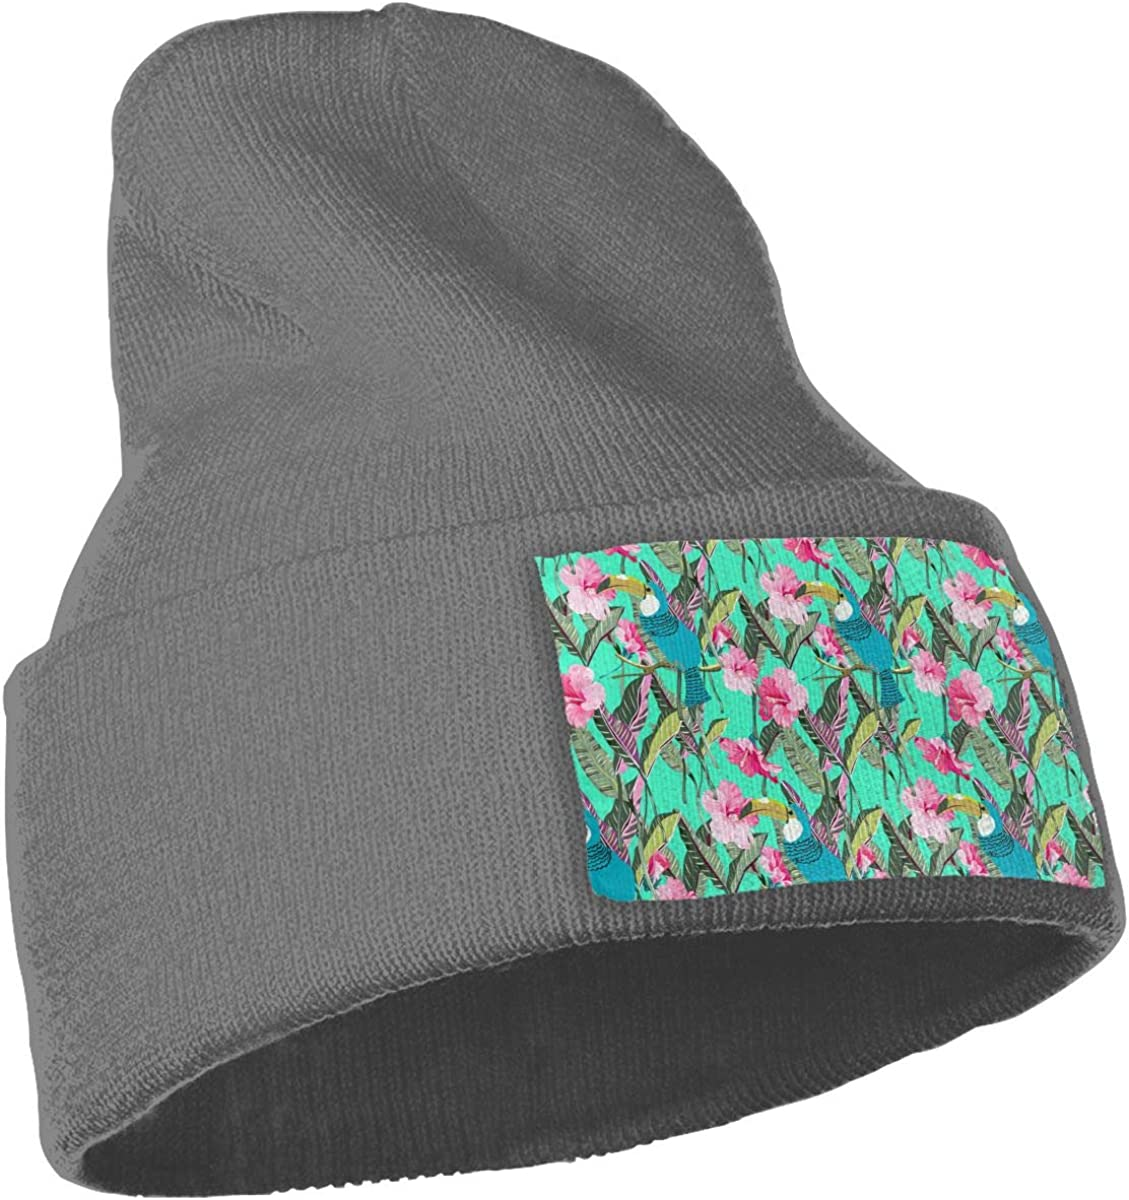 QZqDQ Flowers and Leaves Unisex Fashion Knitted Hat Luxury Hip-Hop Cap